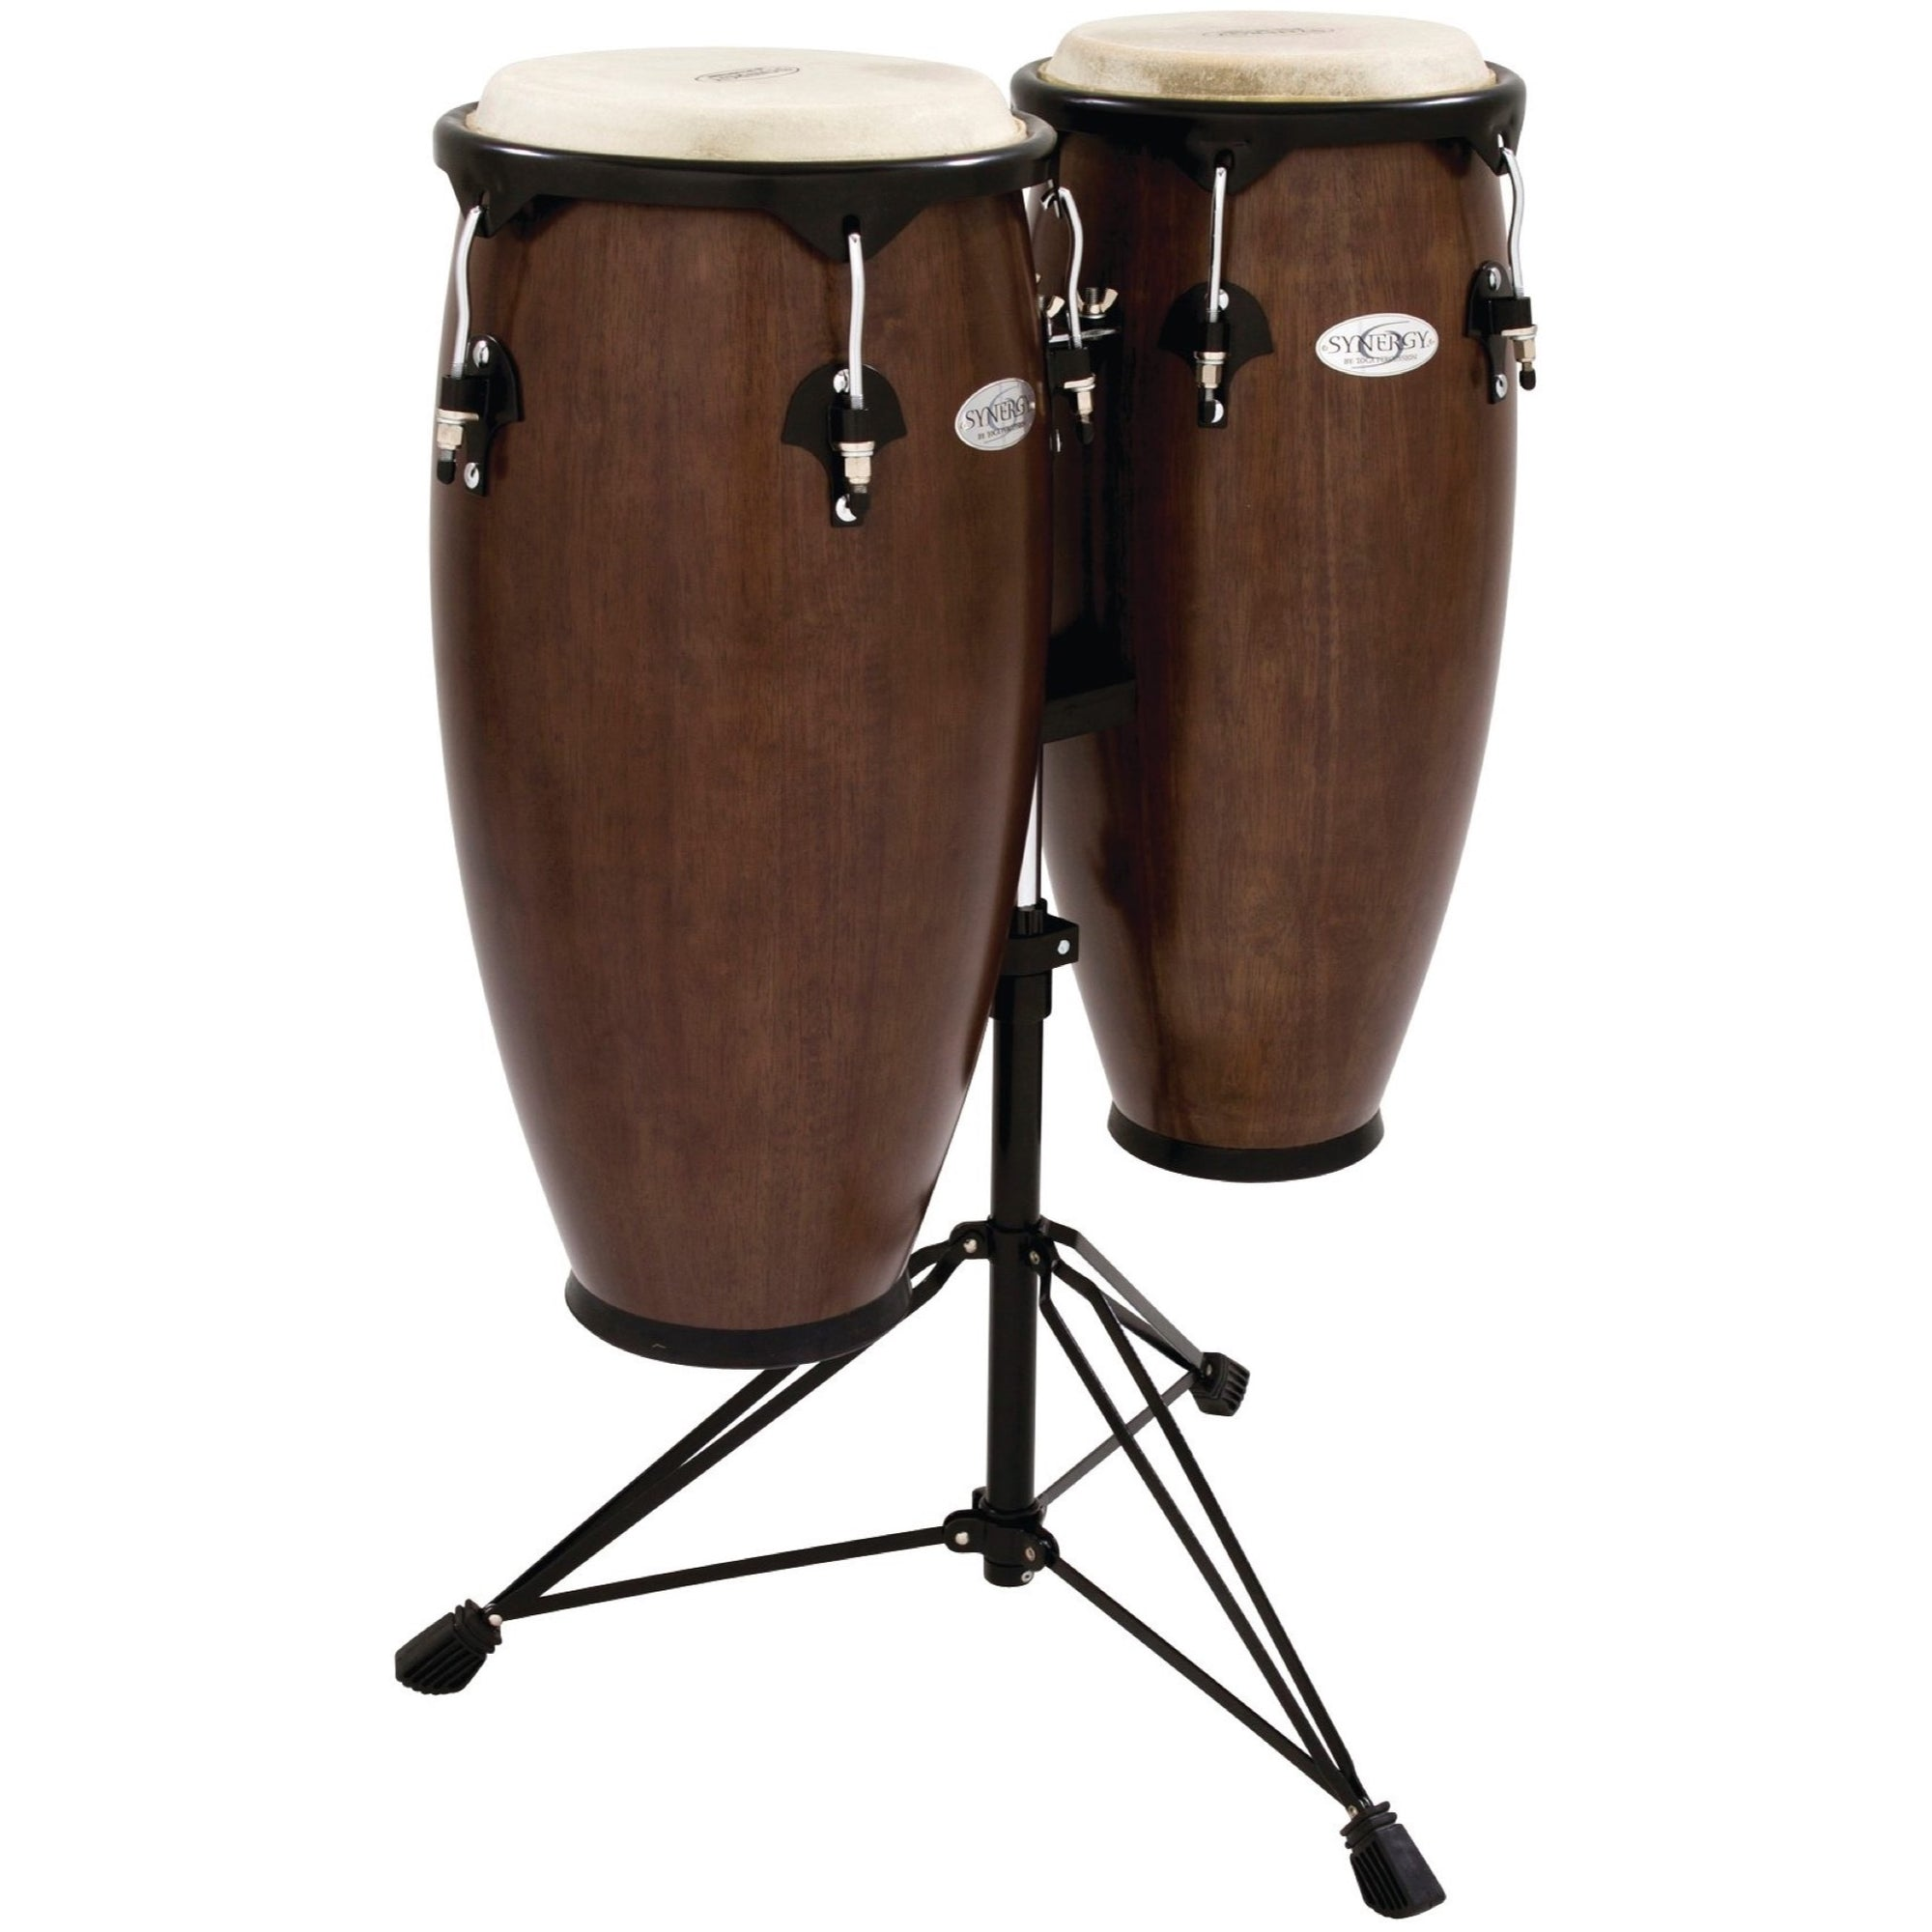 Toca Synergy Congas (with Stand), Tobacco Burst